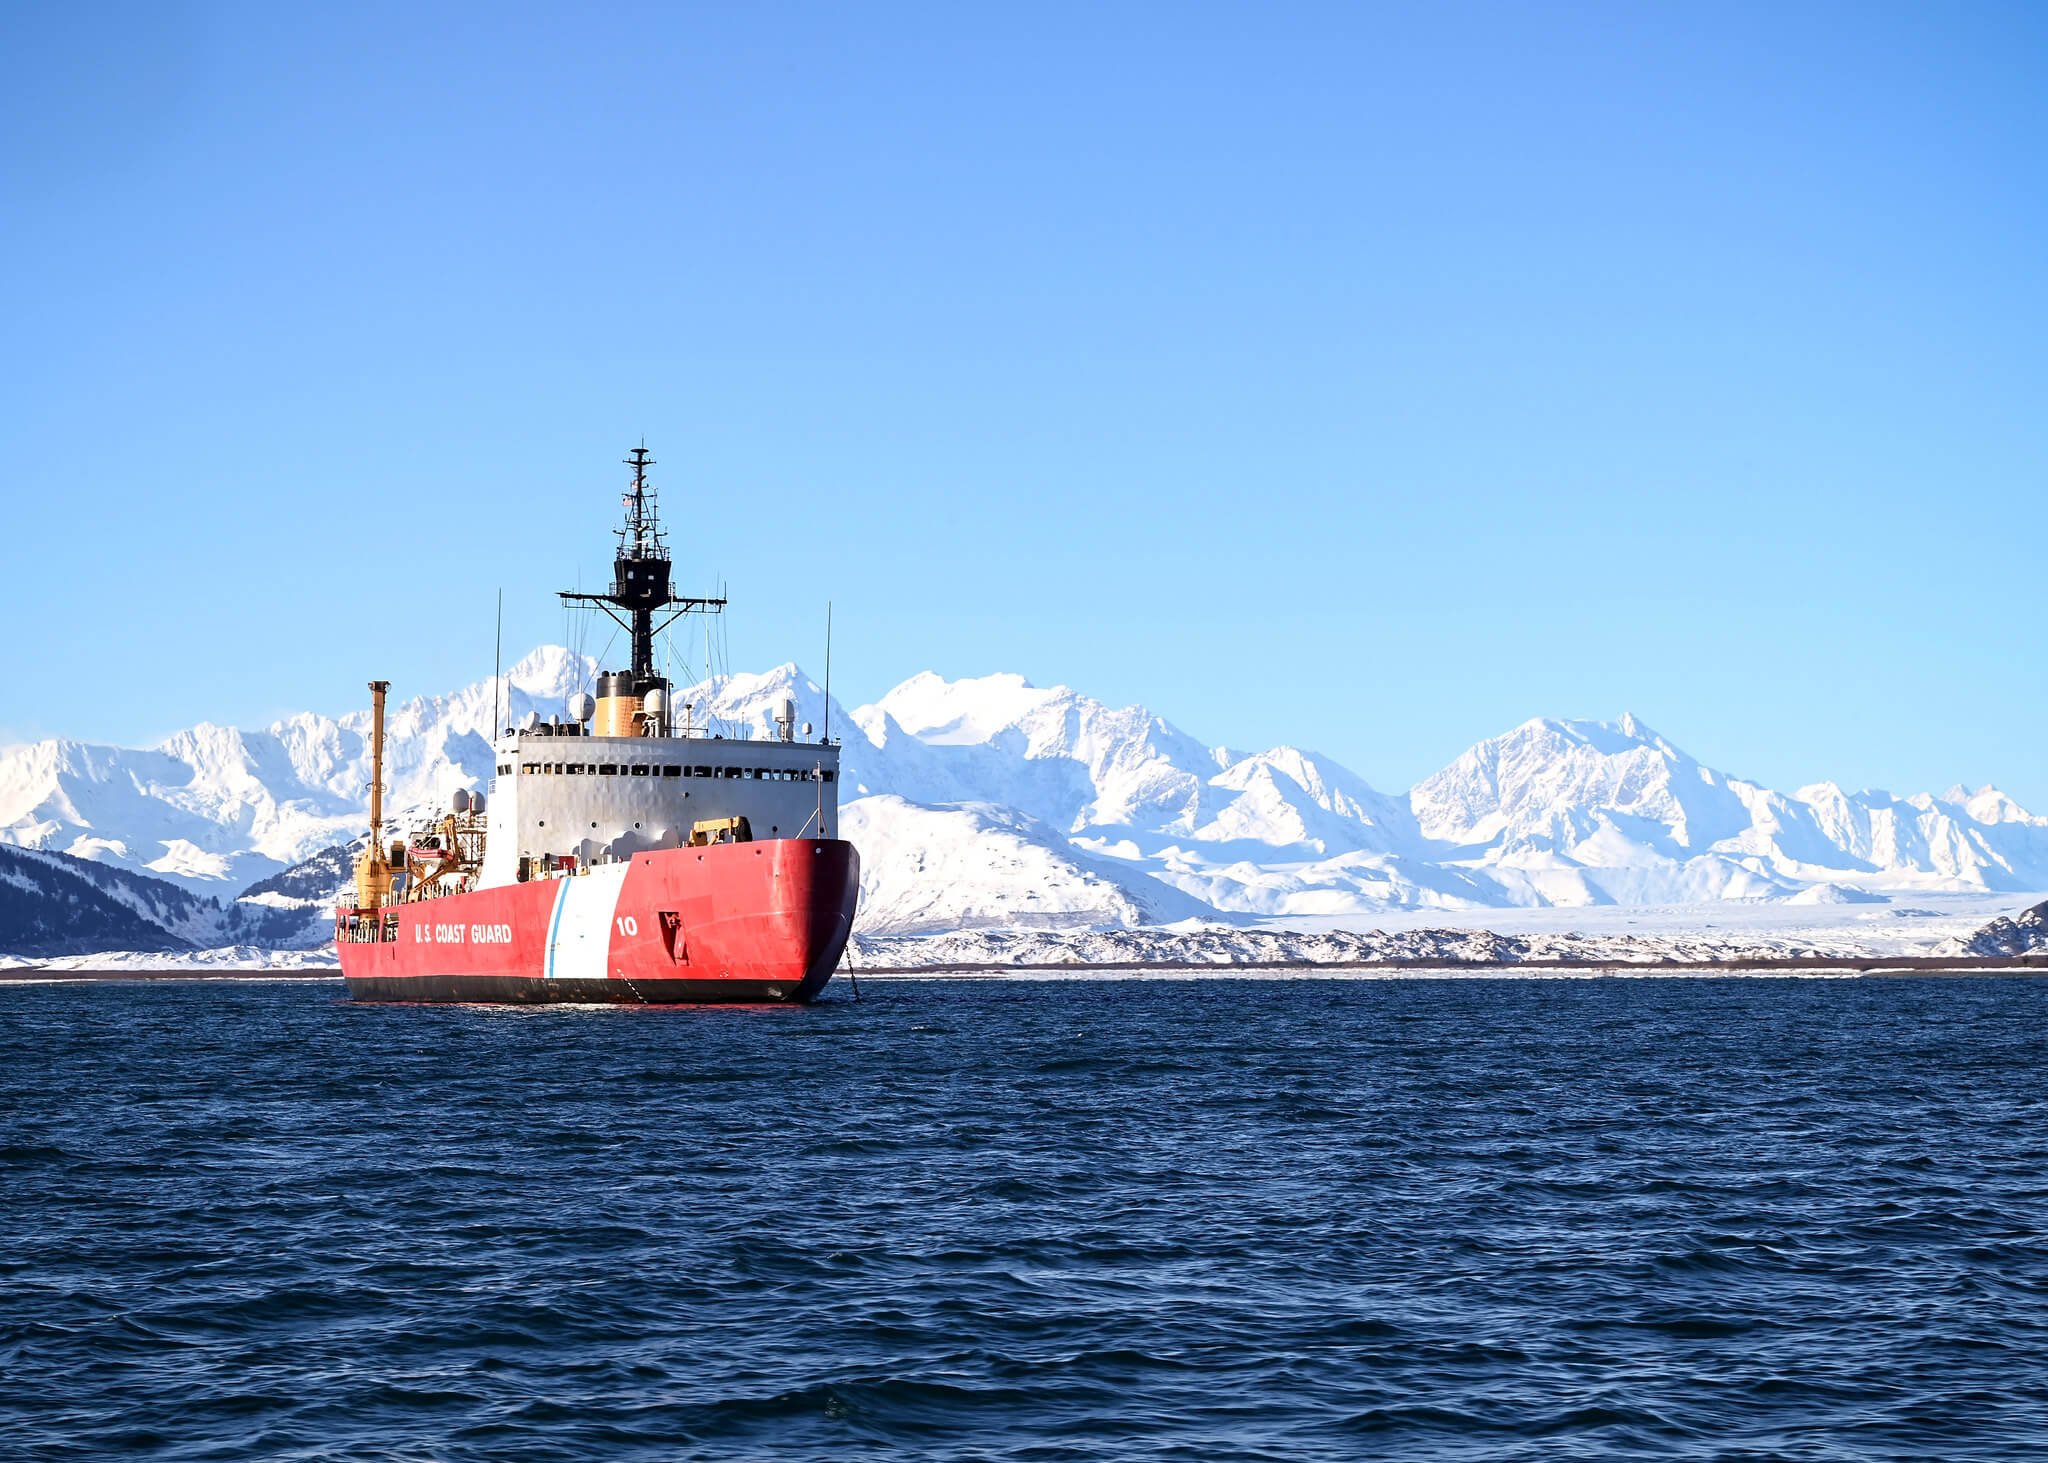 US Coast Guard Cutter Polar Star sits at anchor in Taylor Bay, Alaska, during Arctic deployment, 22 February 2021 © US Into-Pacific Command / Flickr